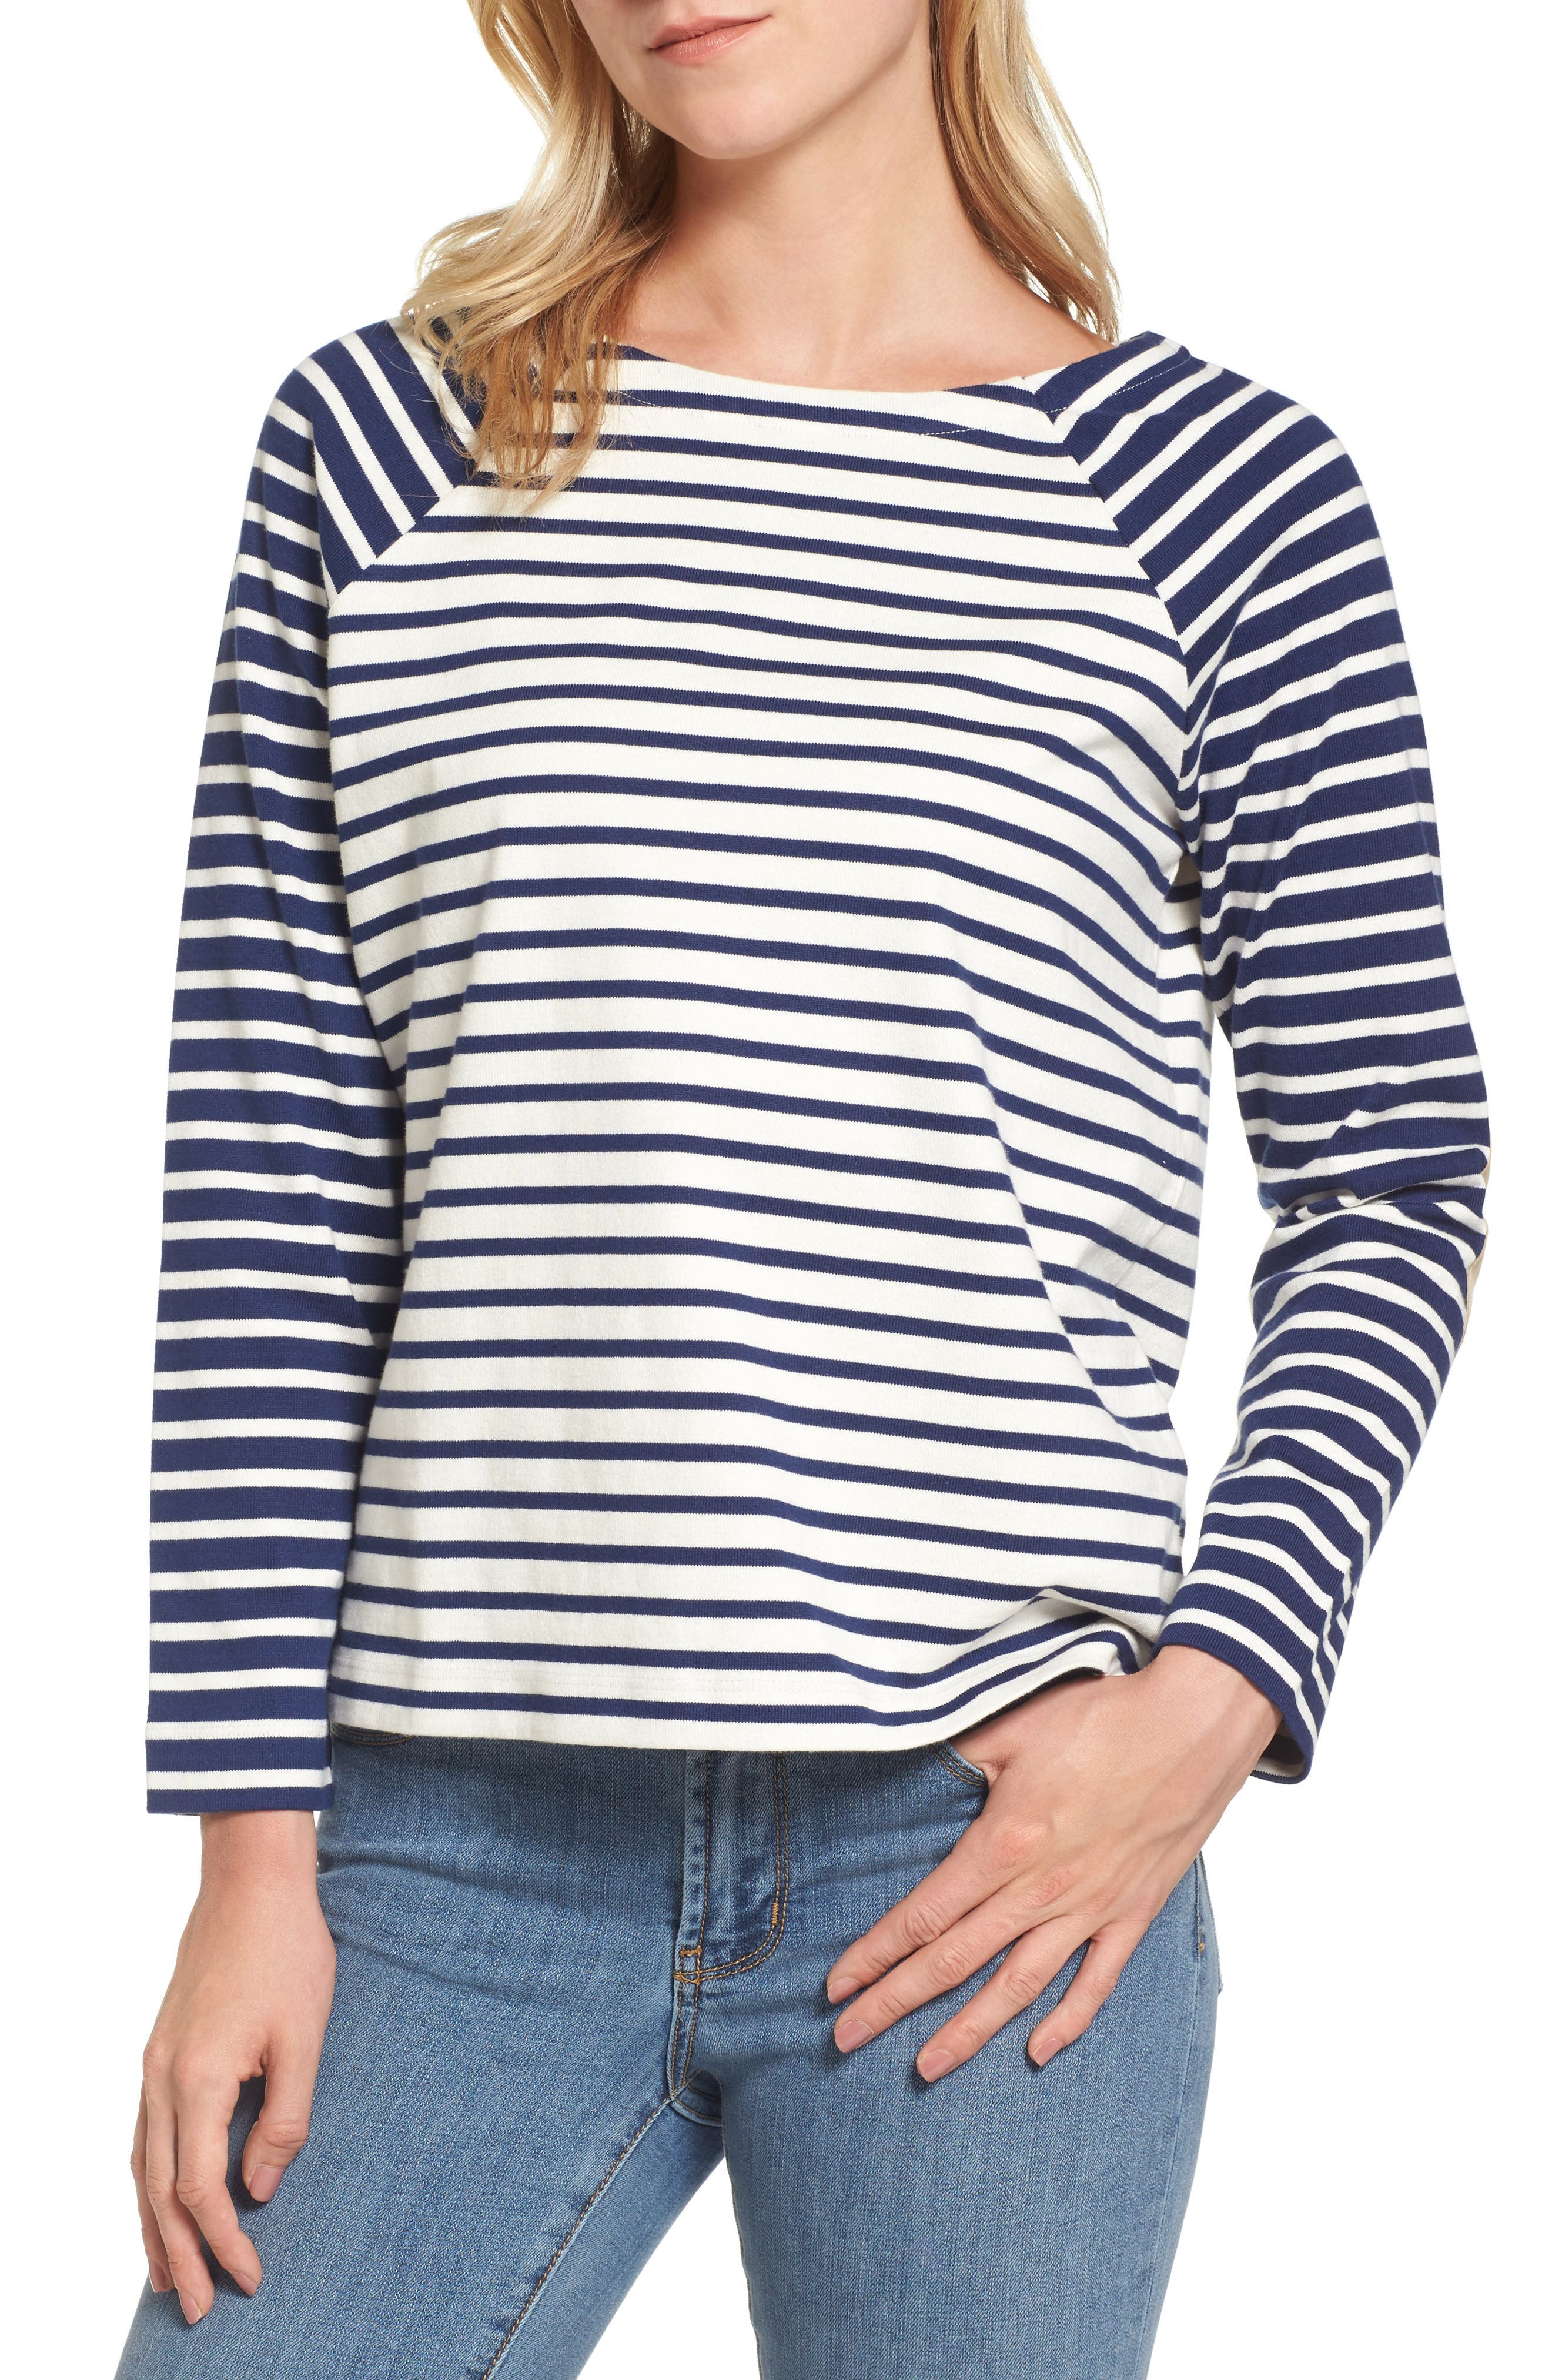 Main Image - vineyard vines Elbow Patch Mixed Stripe Top